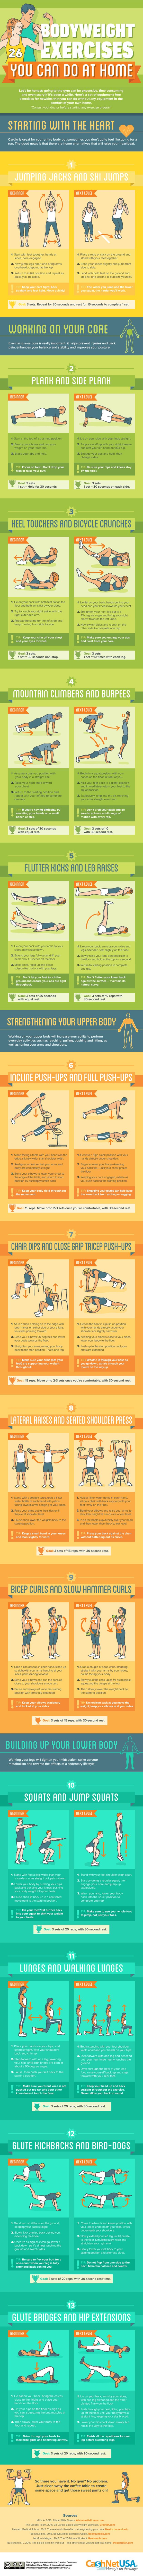 26 Bodyweight Exercises You Can Do At